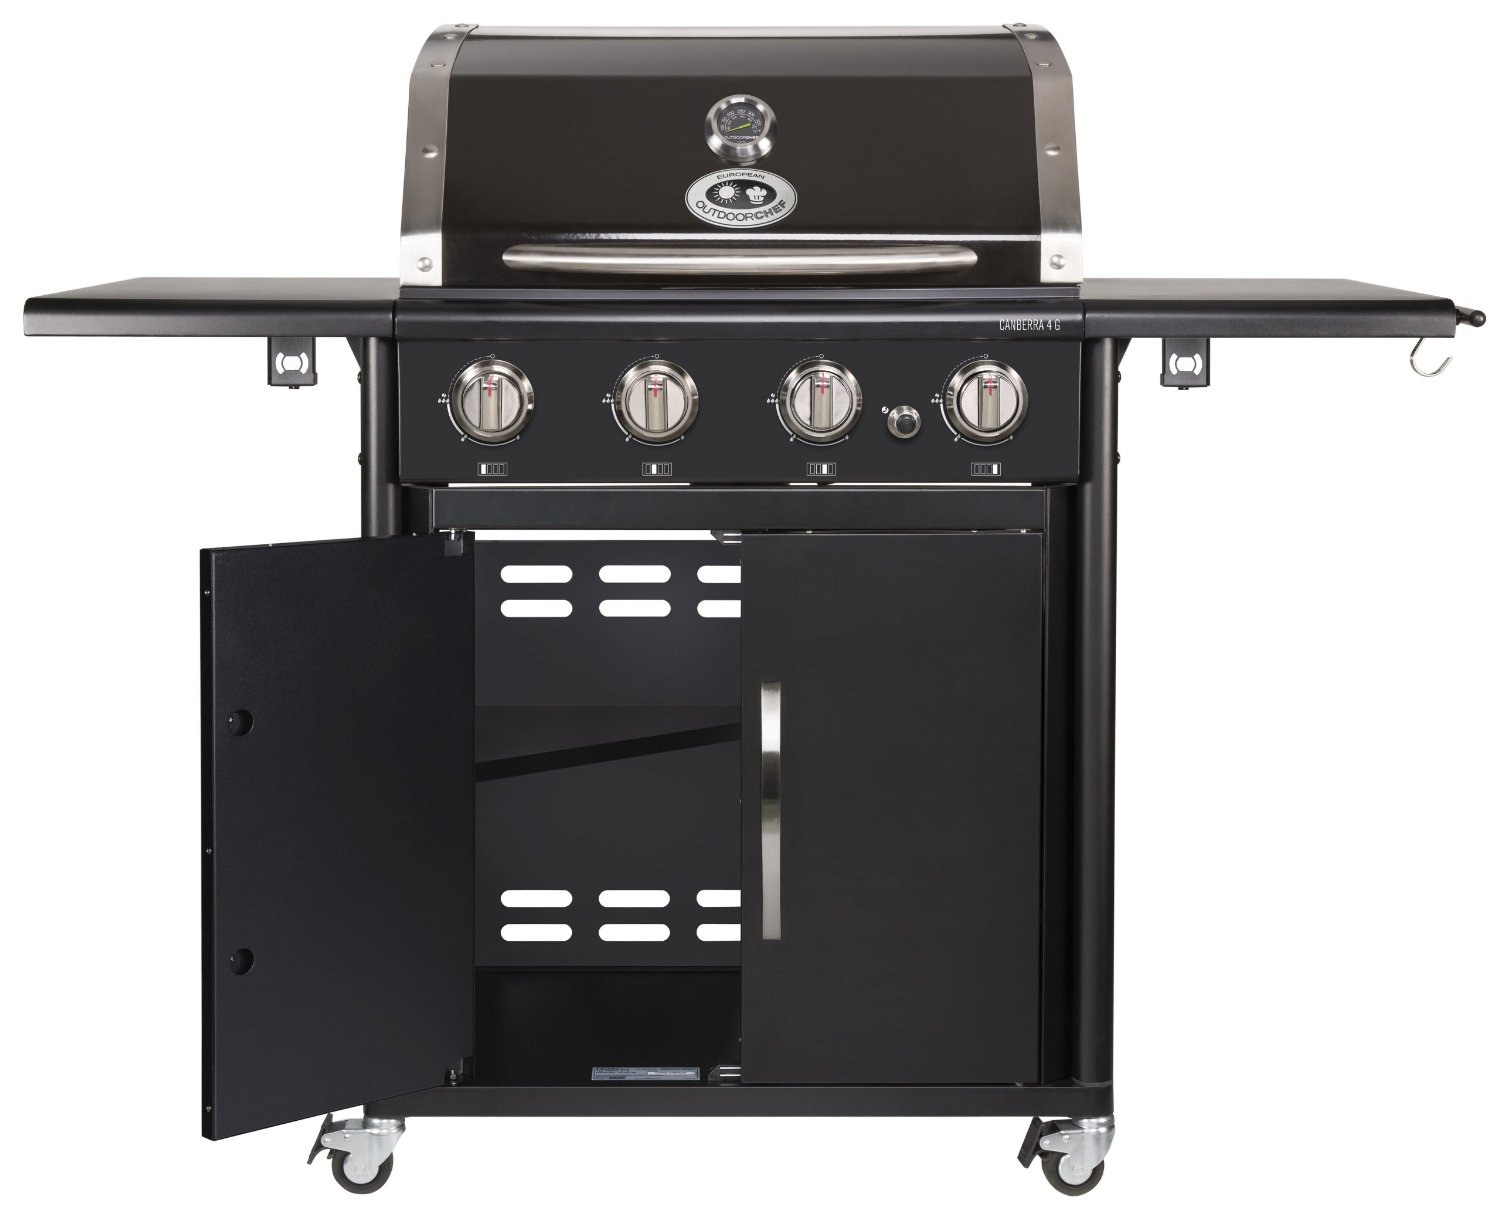 enders monroe 3 s turbo gasgrill 83606 im test. Black Bedroom Furniture Sets. Home Design Ideas